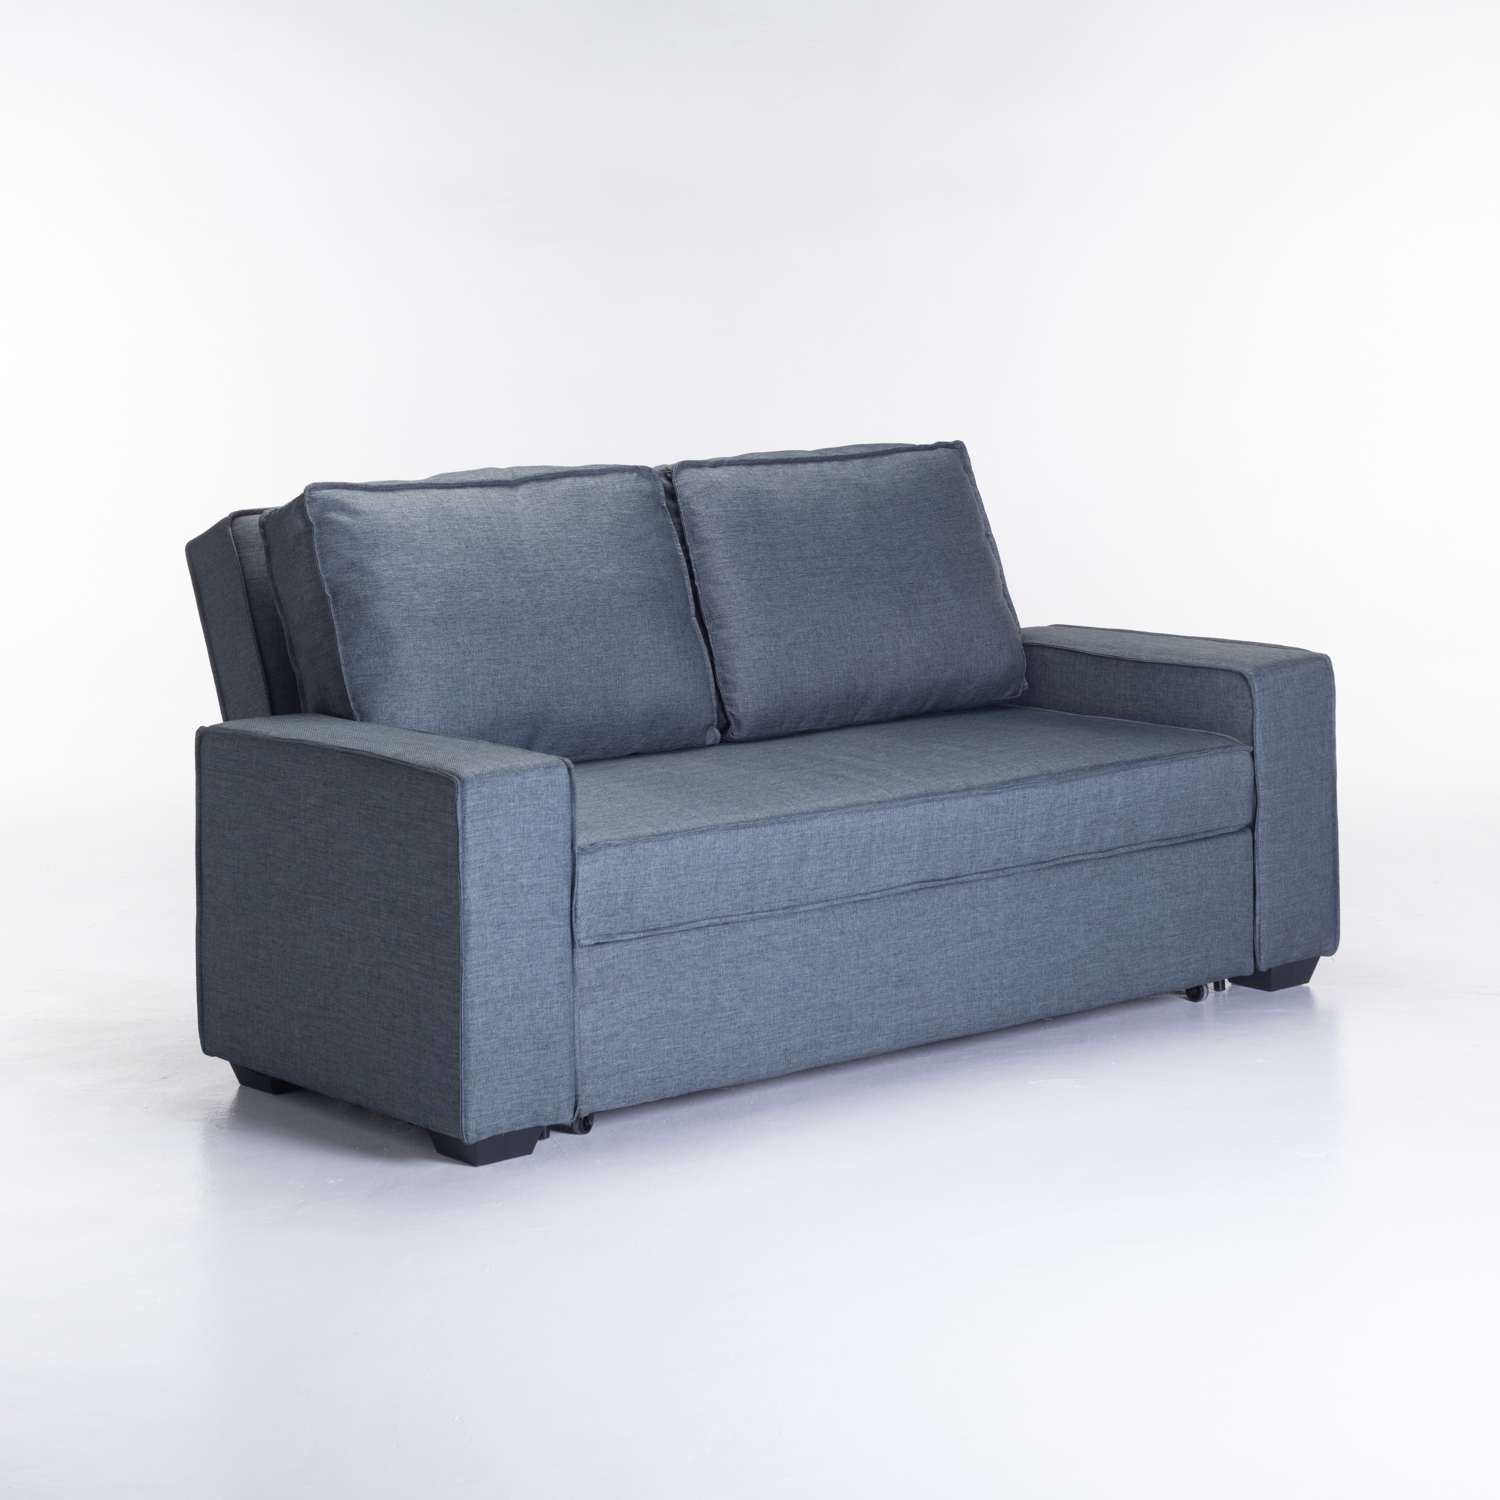 MAX FABRIC CONVERTIBLE COUCH